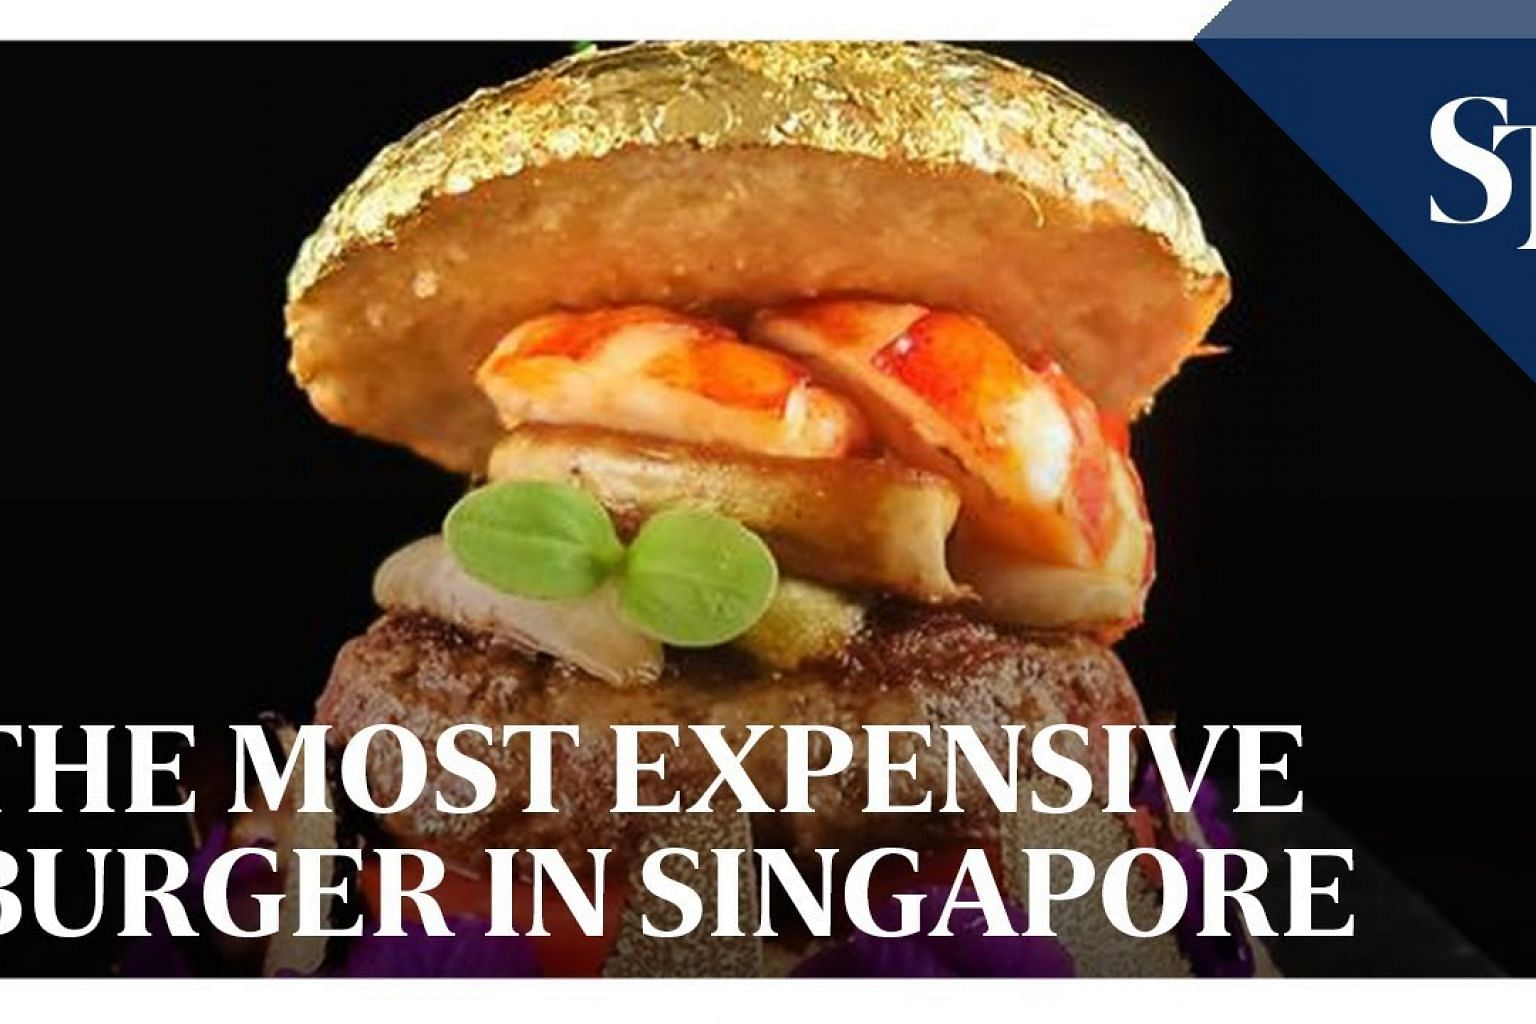 Preparation of 'The Most Expensive Burger in Singapore'